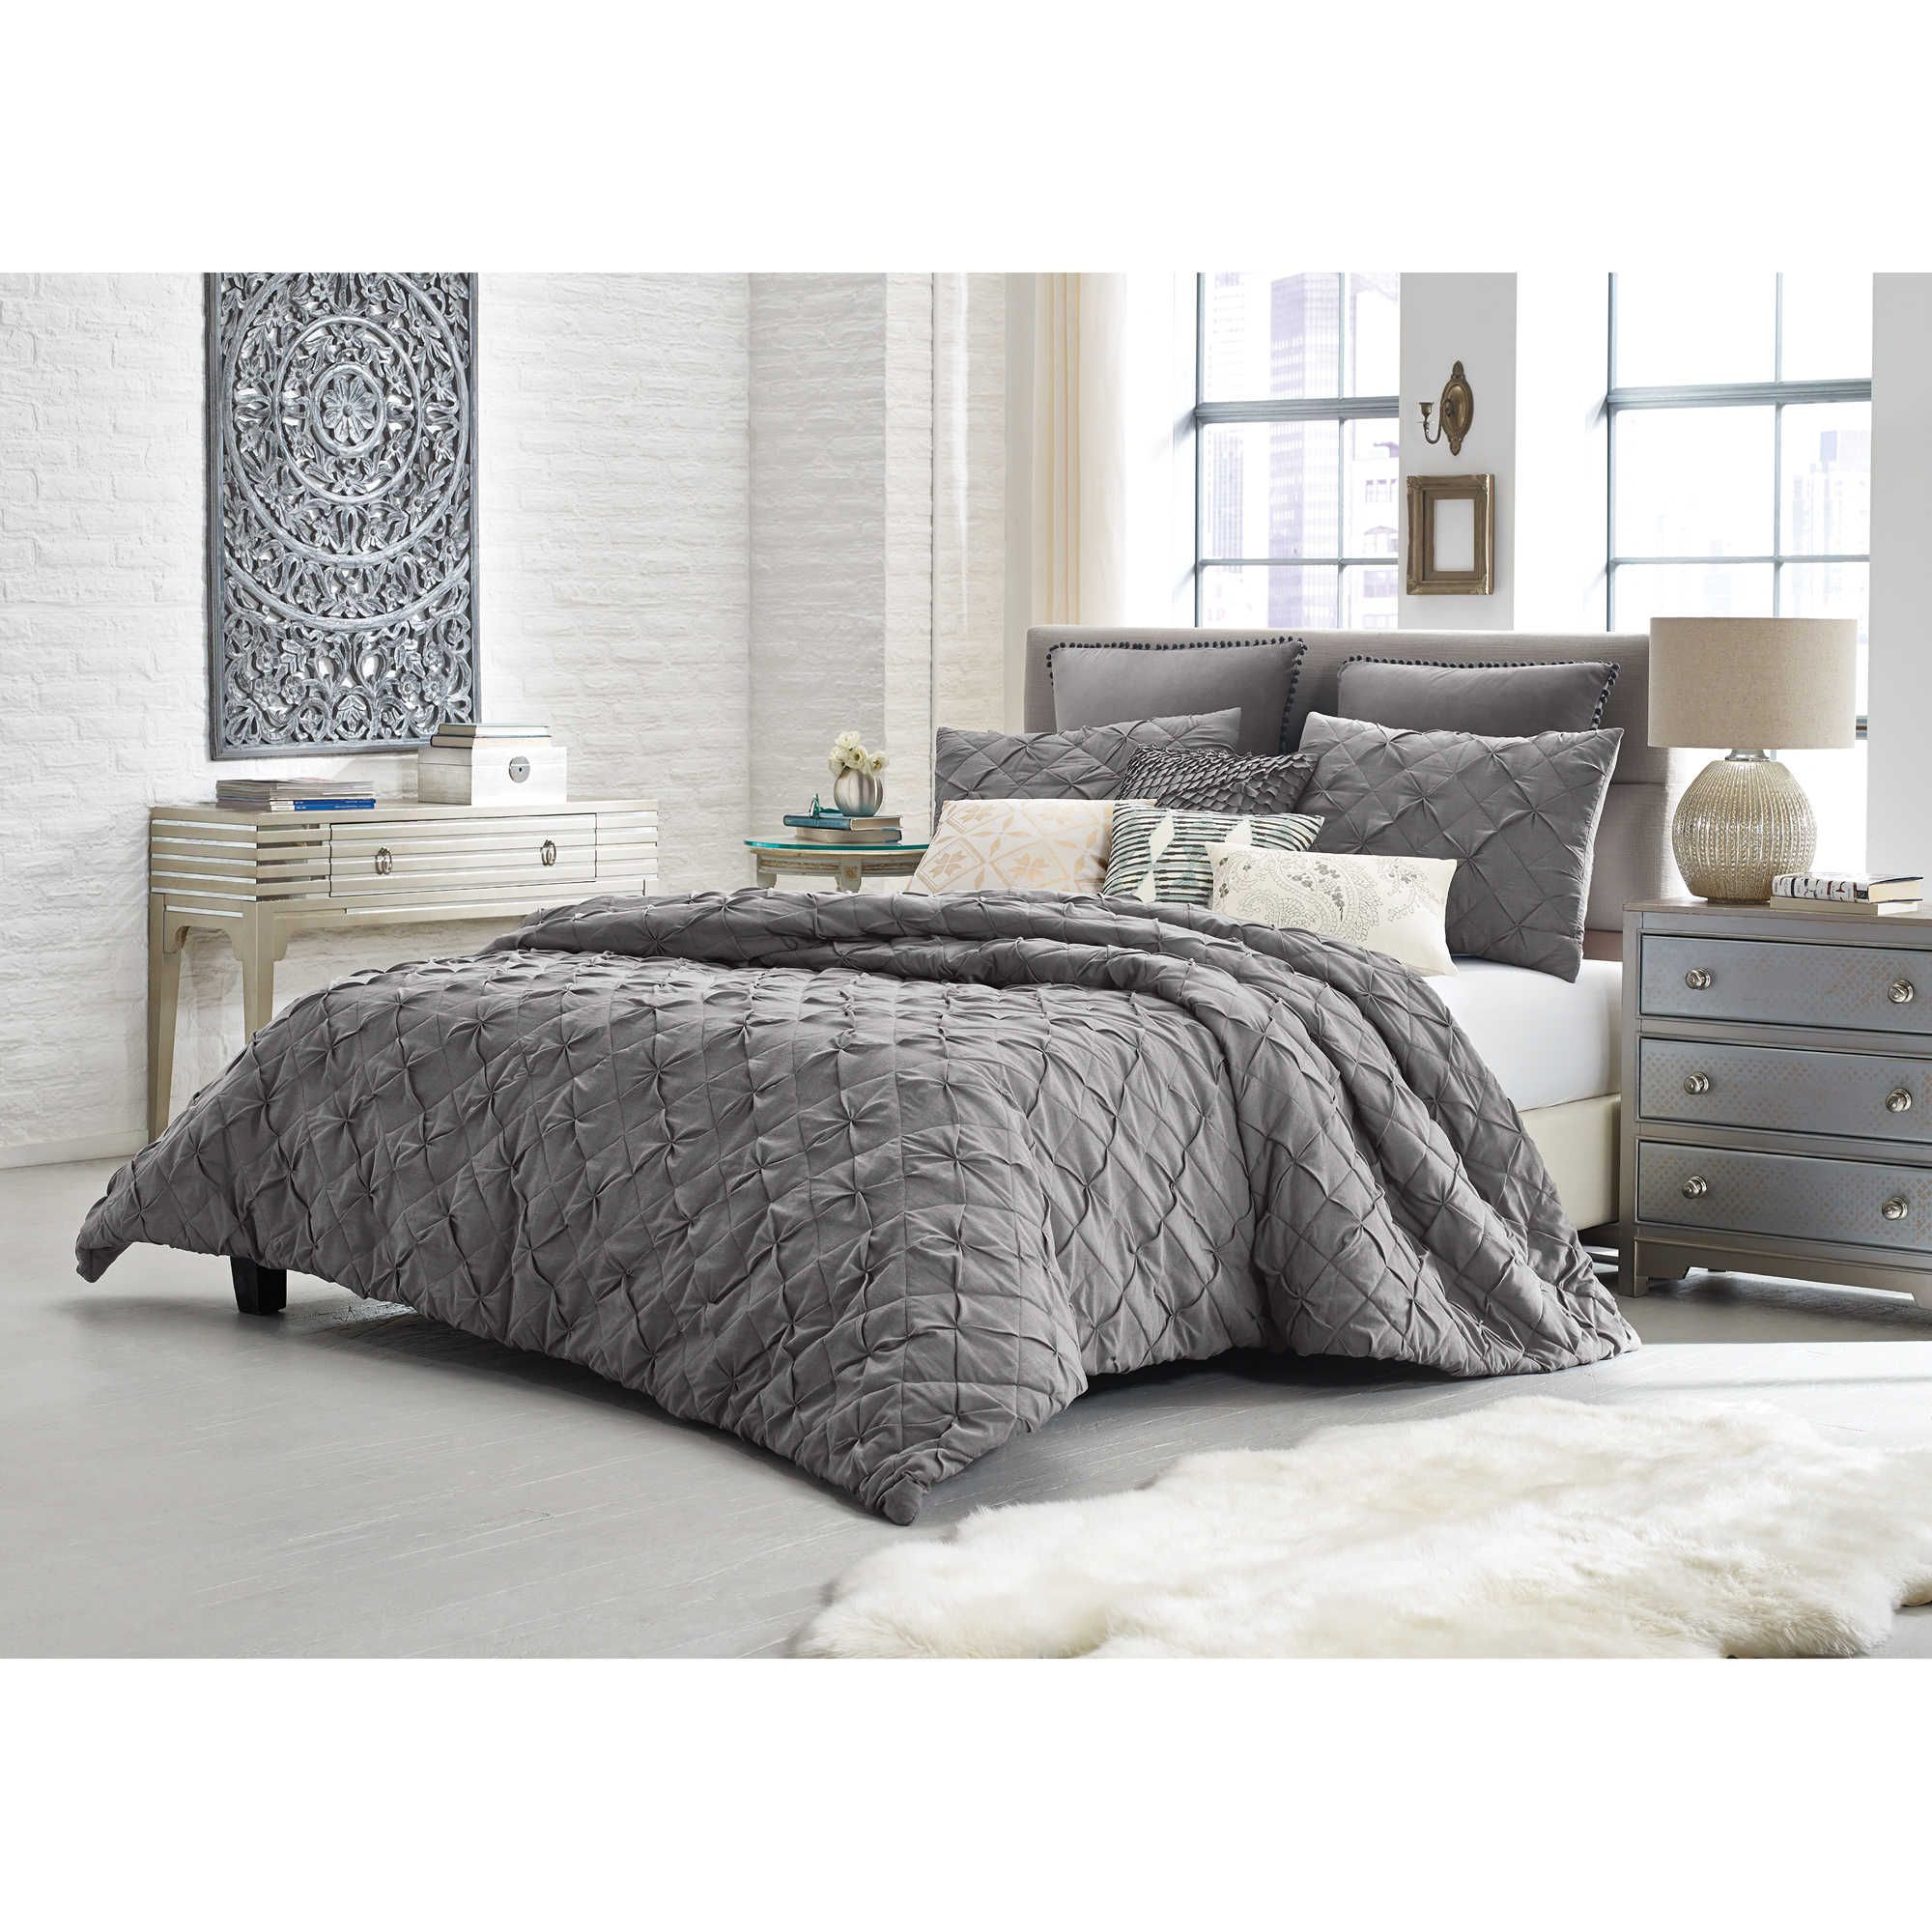 kohls designer college reticence com bedding xl comforter utagriculture for grey ave sets blue macys set series twin